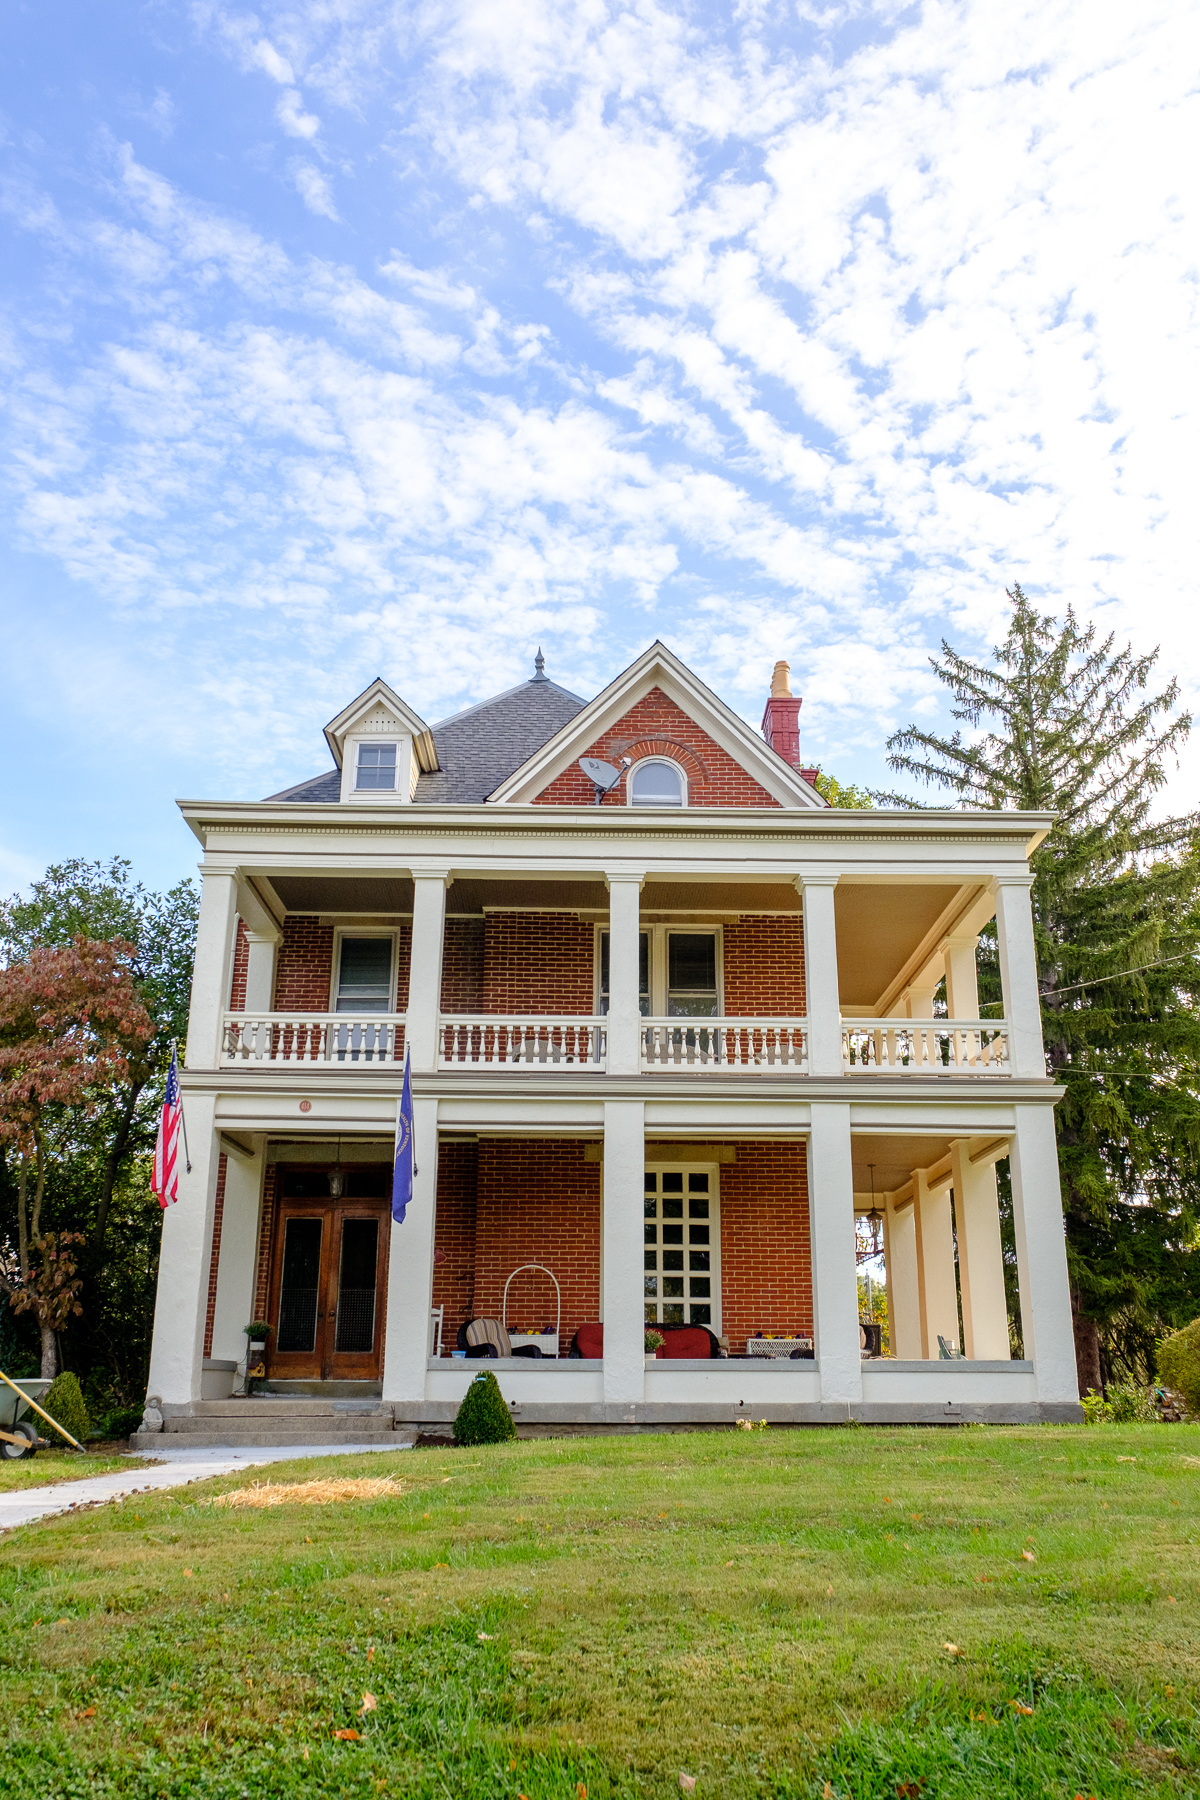 Located on the southern bank of the Ohio River, Fort Thomas, Ky. is a beautiful city chock-full of gorgeous homes. Don't believe us? Take a tour through this photo gallery which would make any architecture-lover smile. / Image: Daniel Smyth Photography // Published: 10.23.16